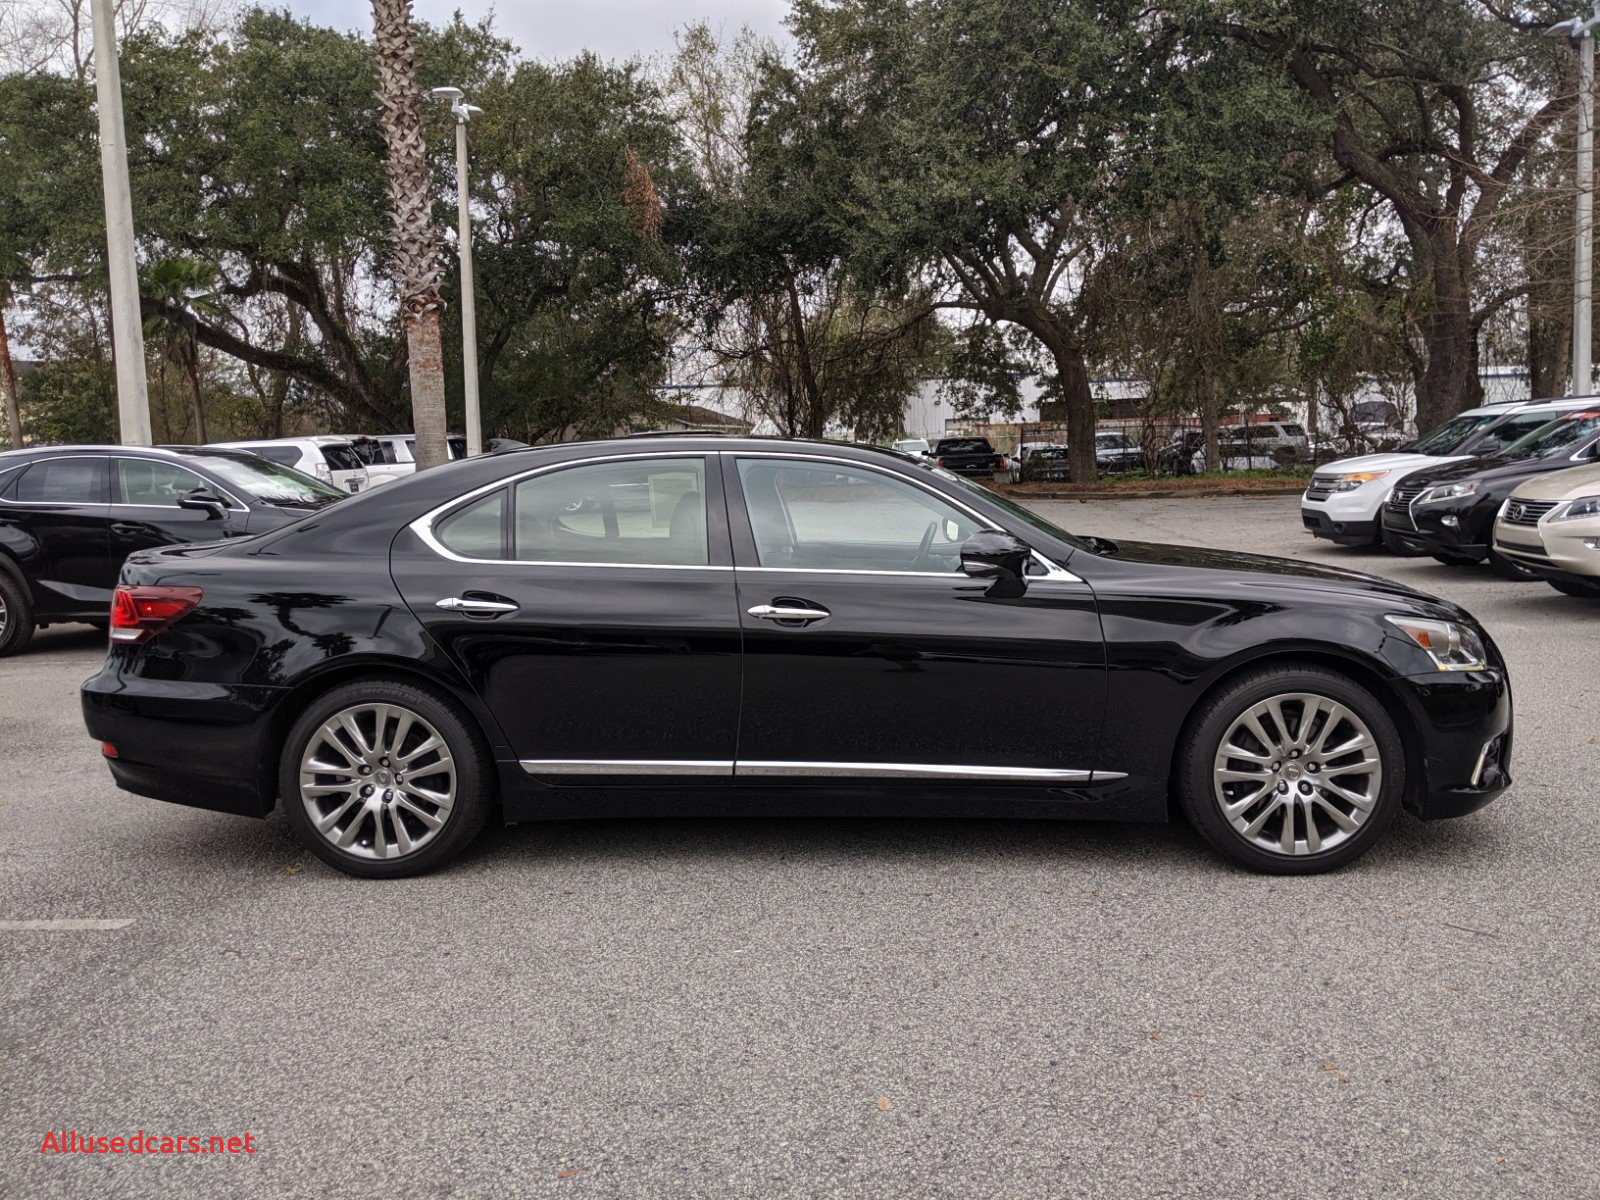 Lexus Ls 460 for Sale Awesome Pre Owned 2014 Lexus Ls 460 4dr Sdn Rwd